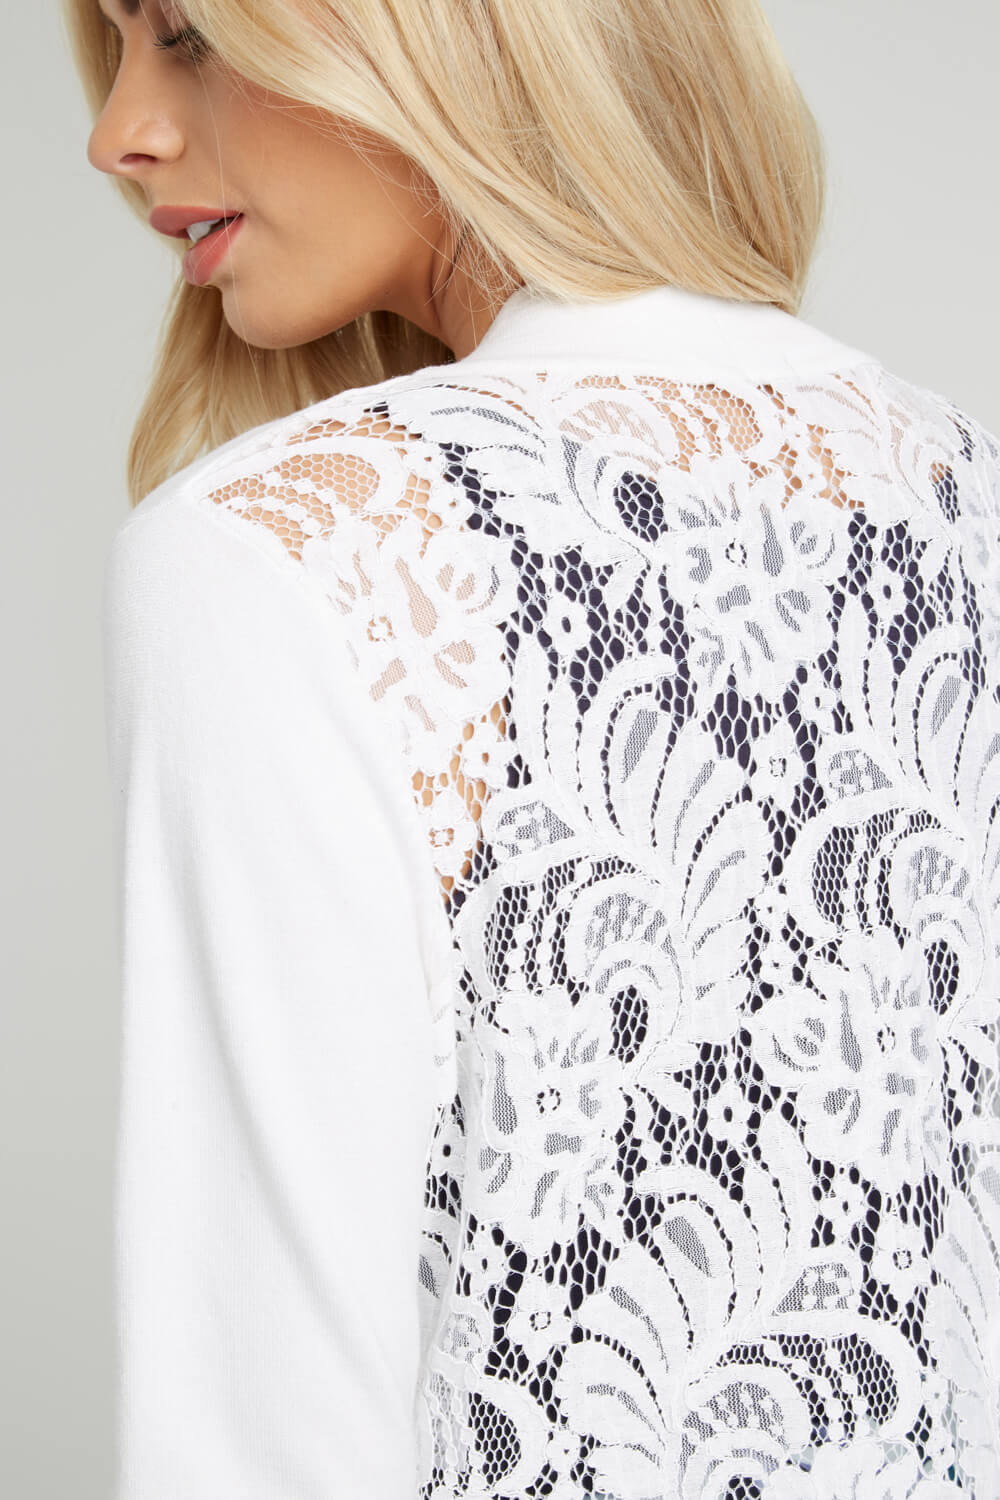 Roman-Originals-Women-039-s-White-Lace-Back-Shrug-Cardigan-Sizes-10-20 thumbnail 40